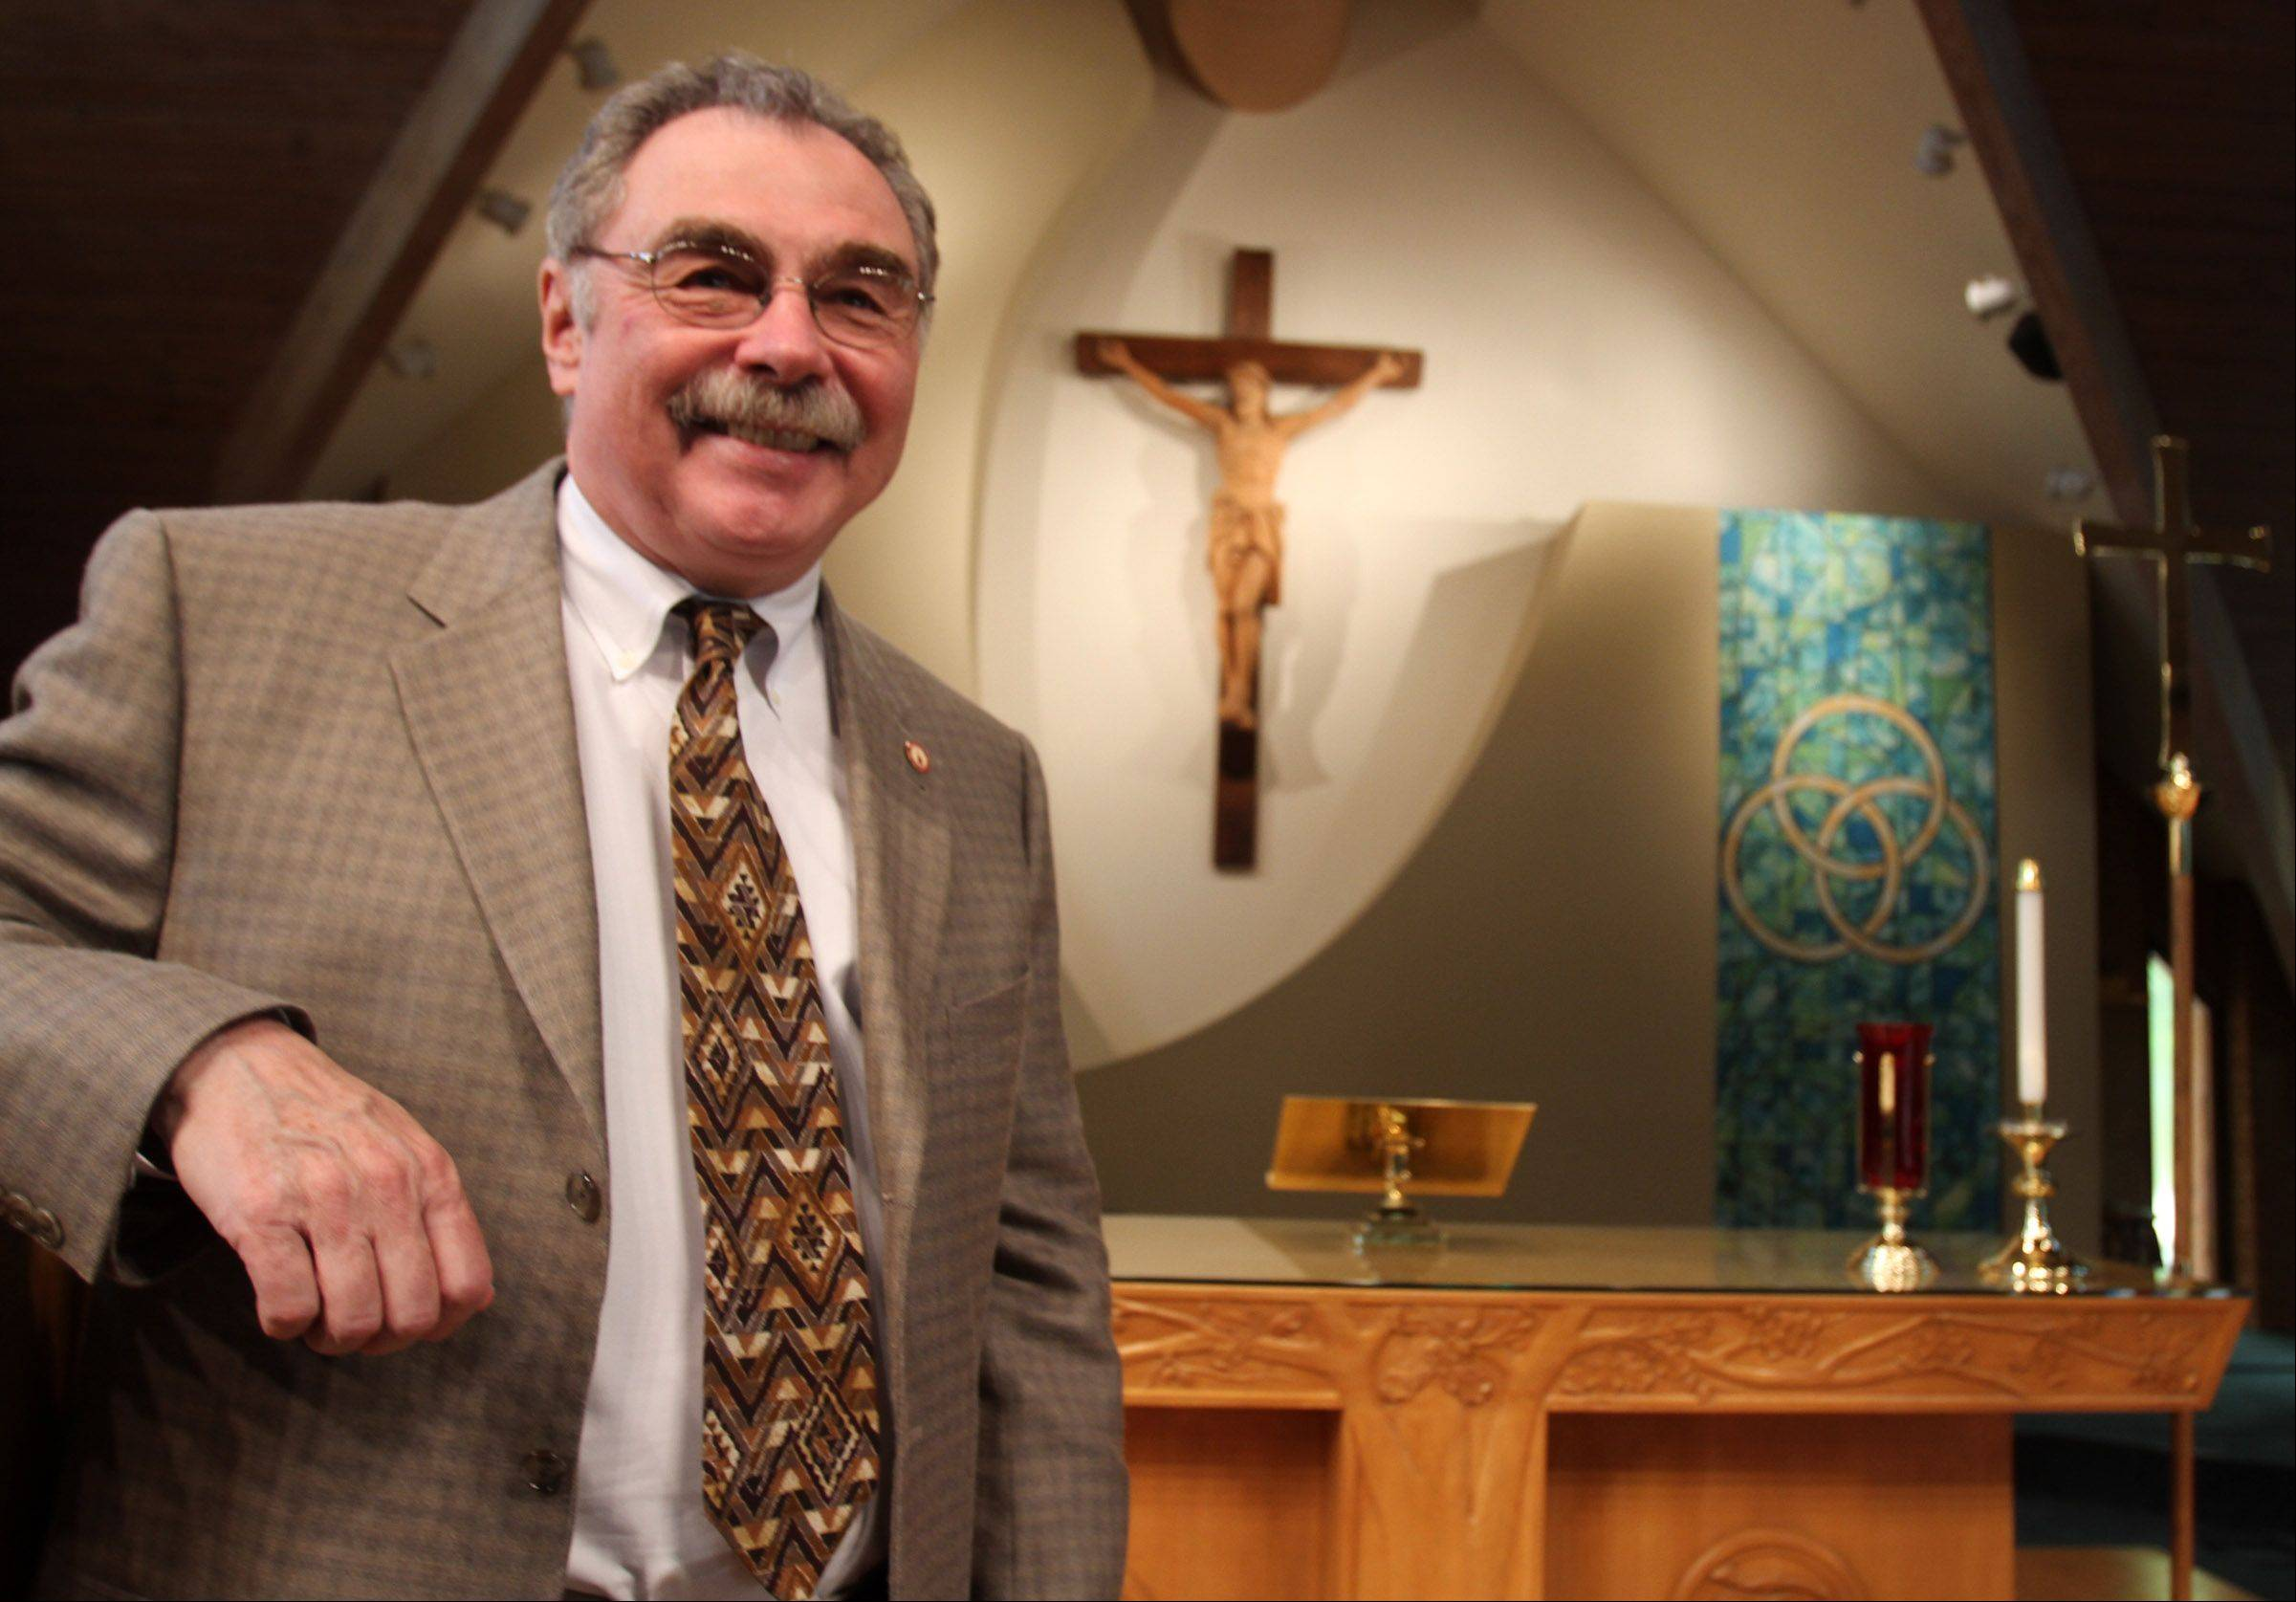 The Rev. Craig Wagner, the longtime leader of Christ Lutheran Church in Palatine, is retiring and relocating to Texas. His last Sunday service will be Aug. 26.